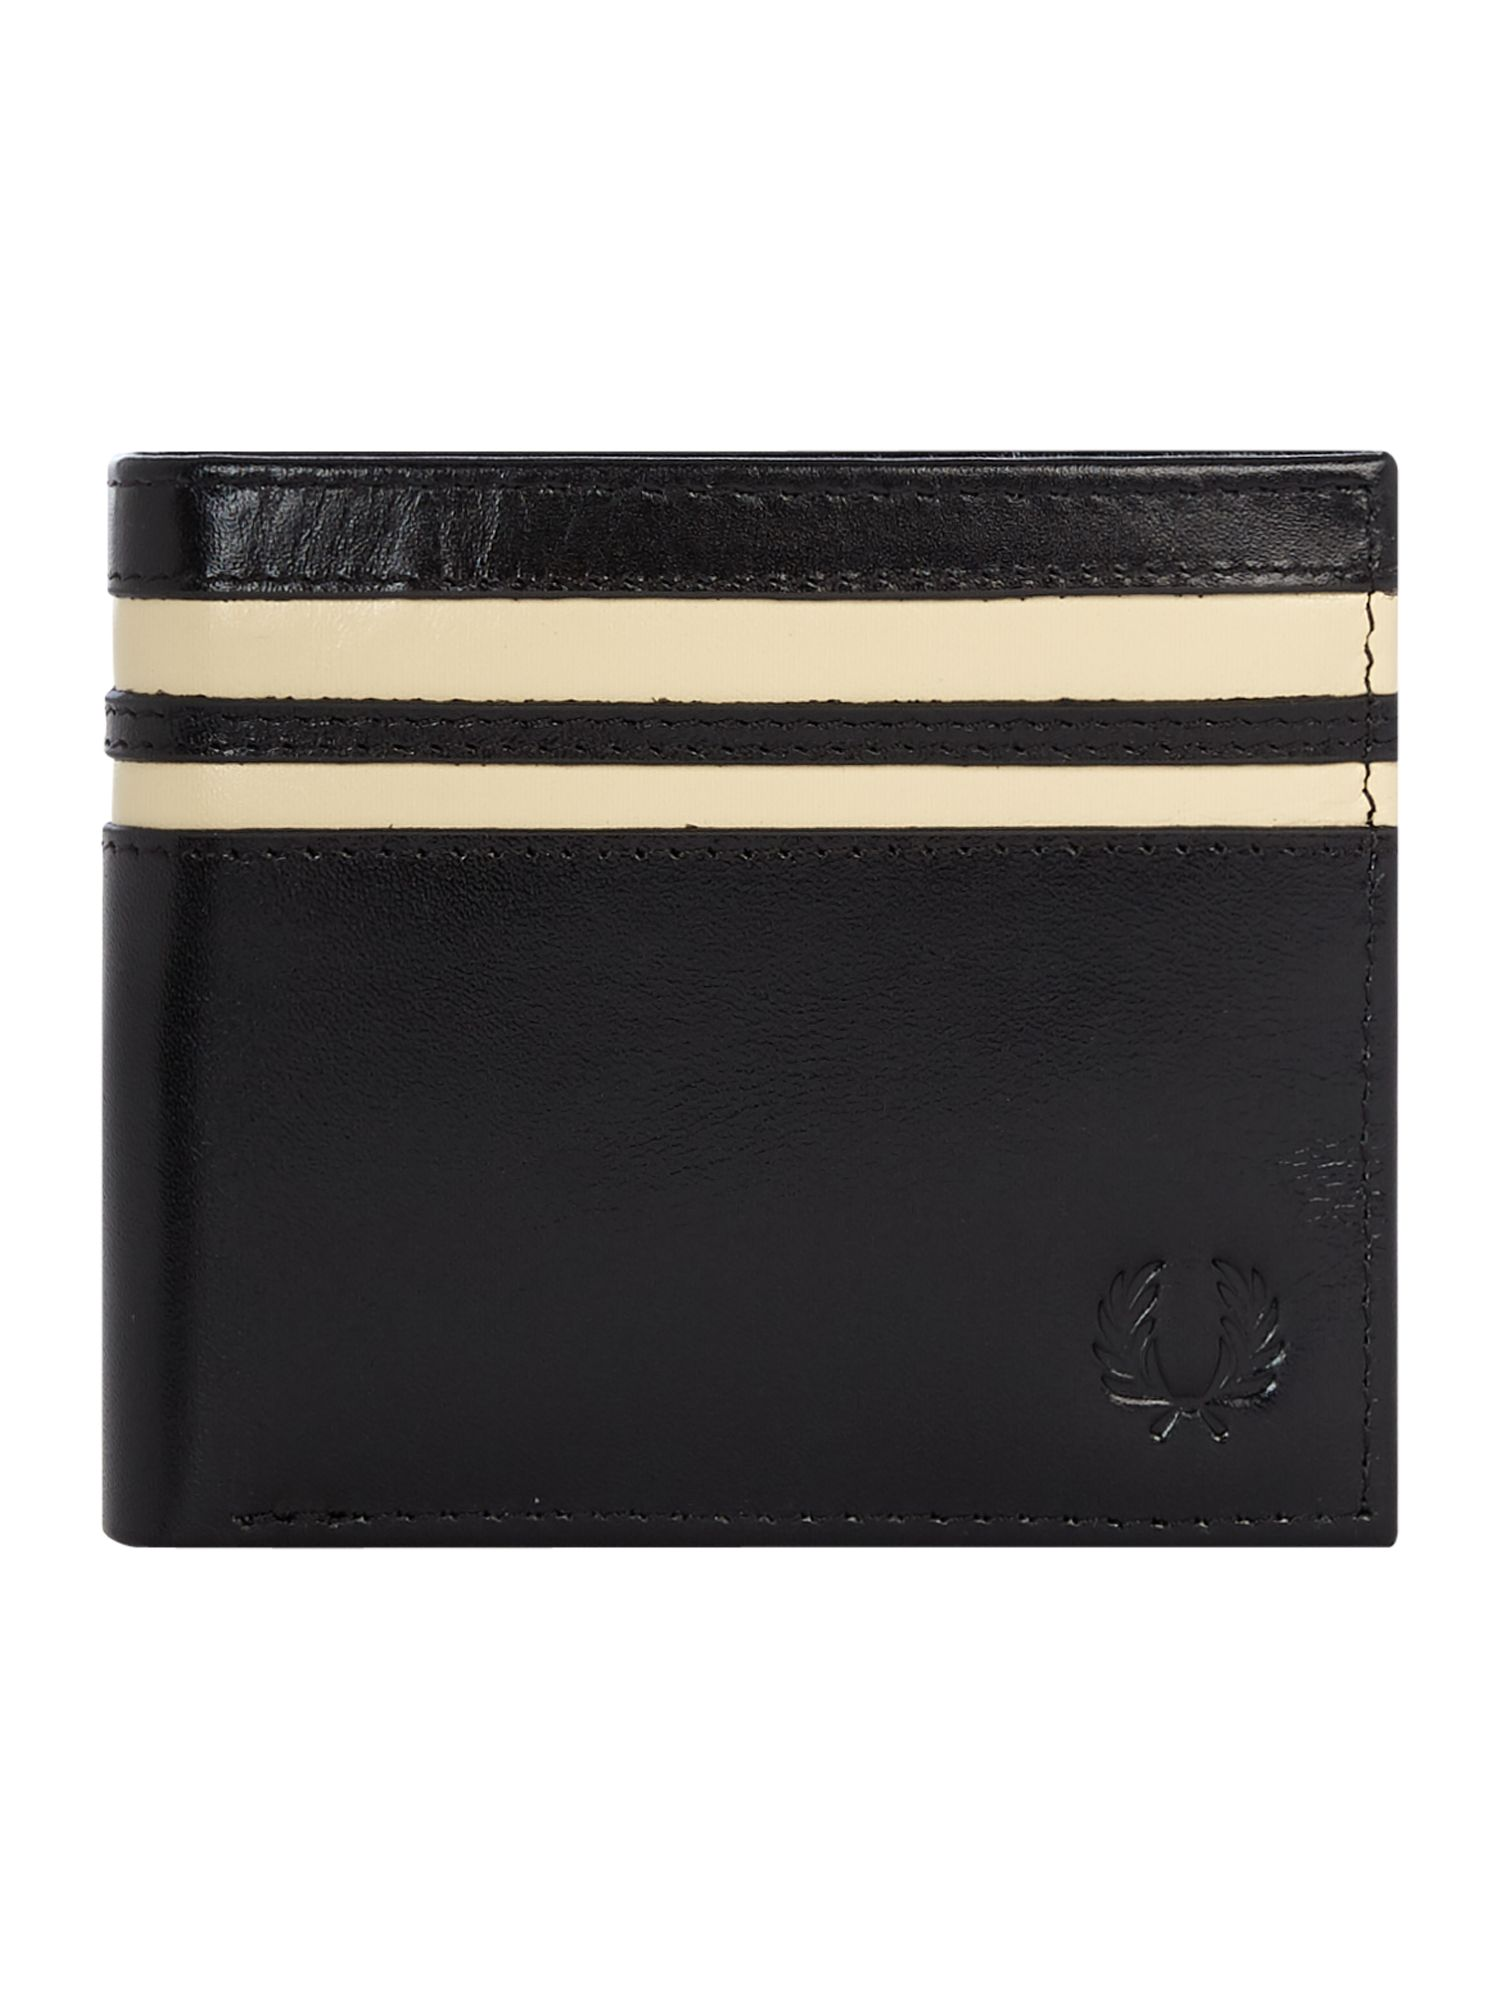 Fred Perry Leather Billfold Wallet, Black